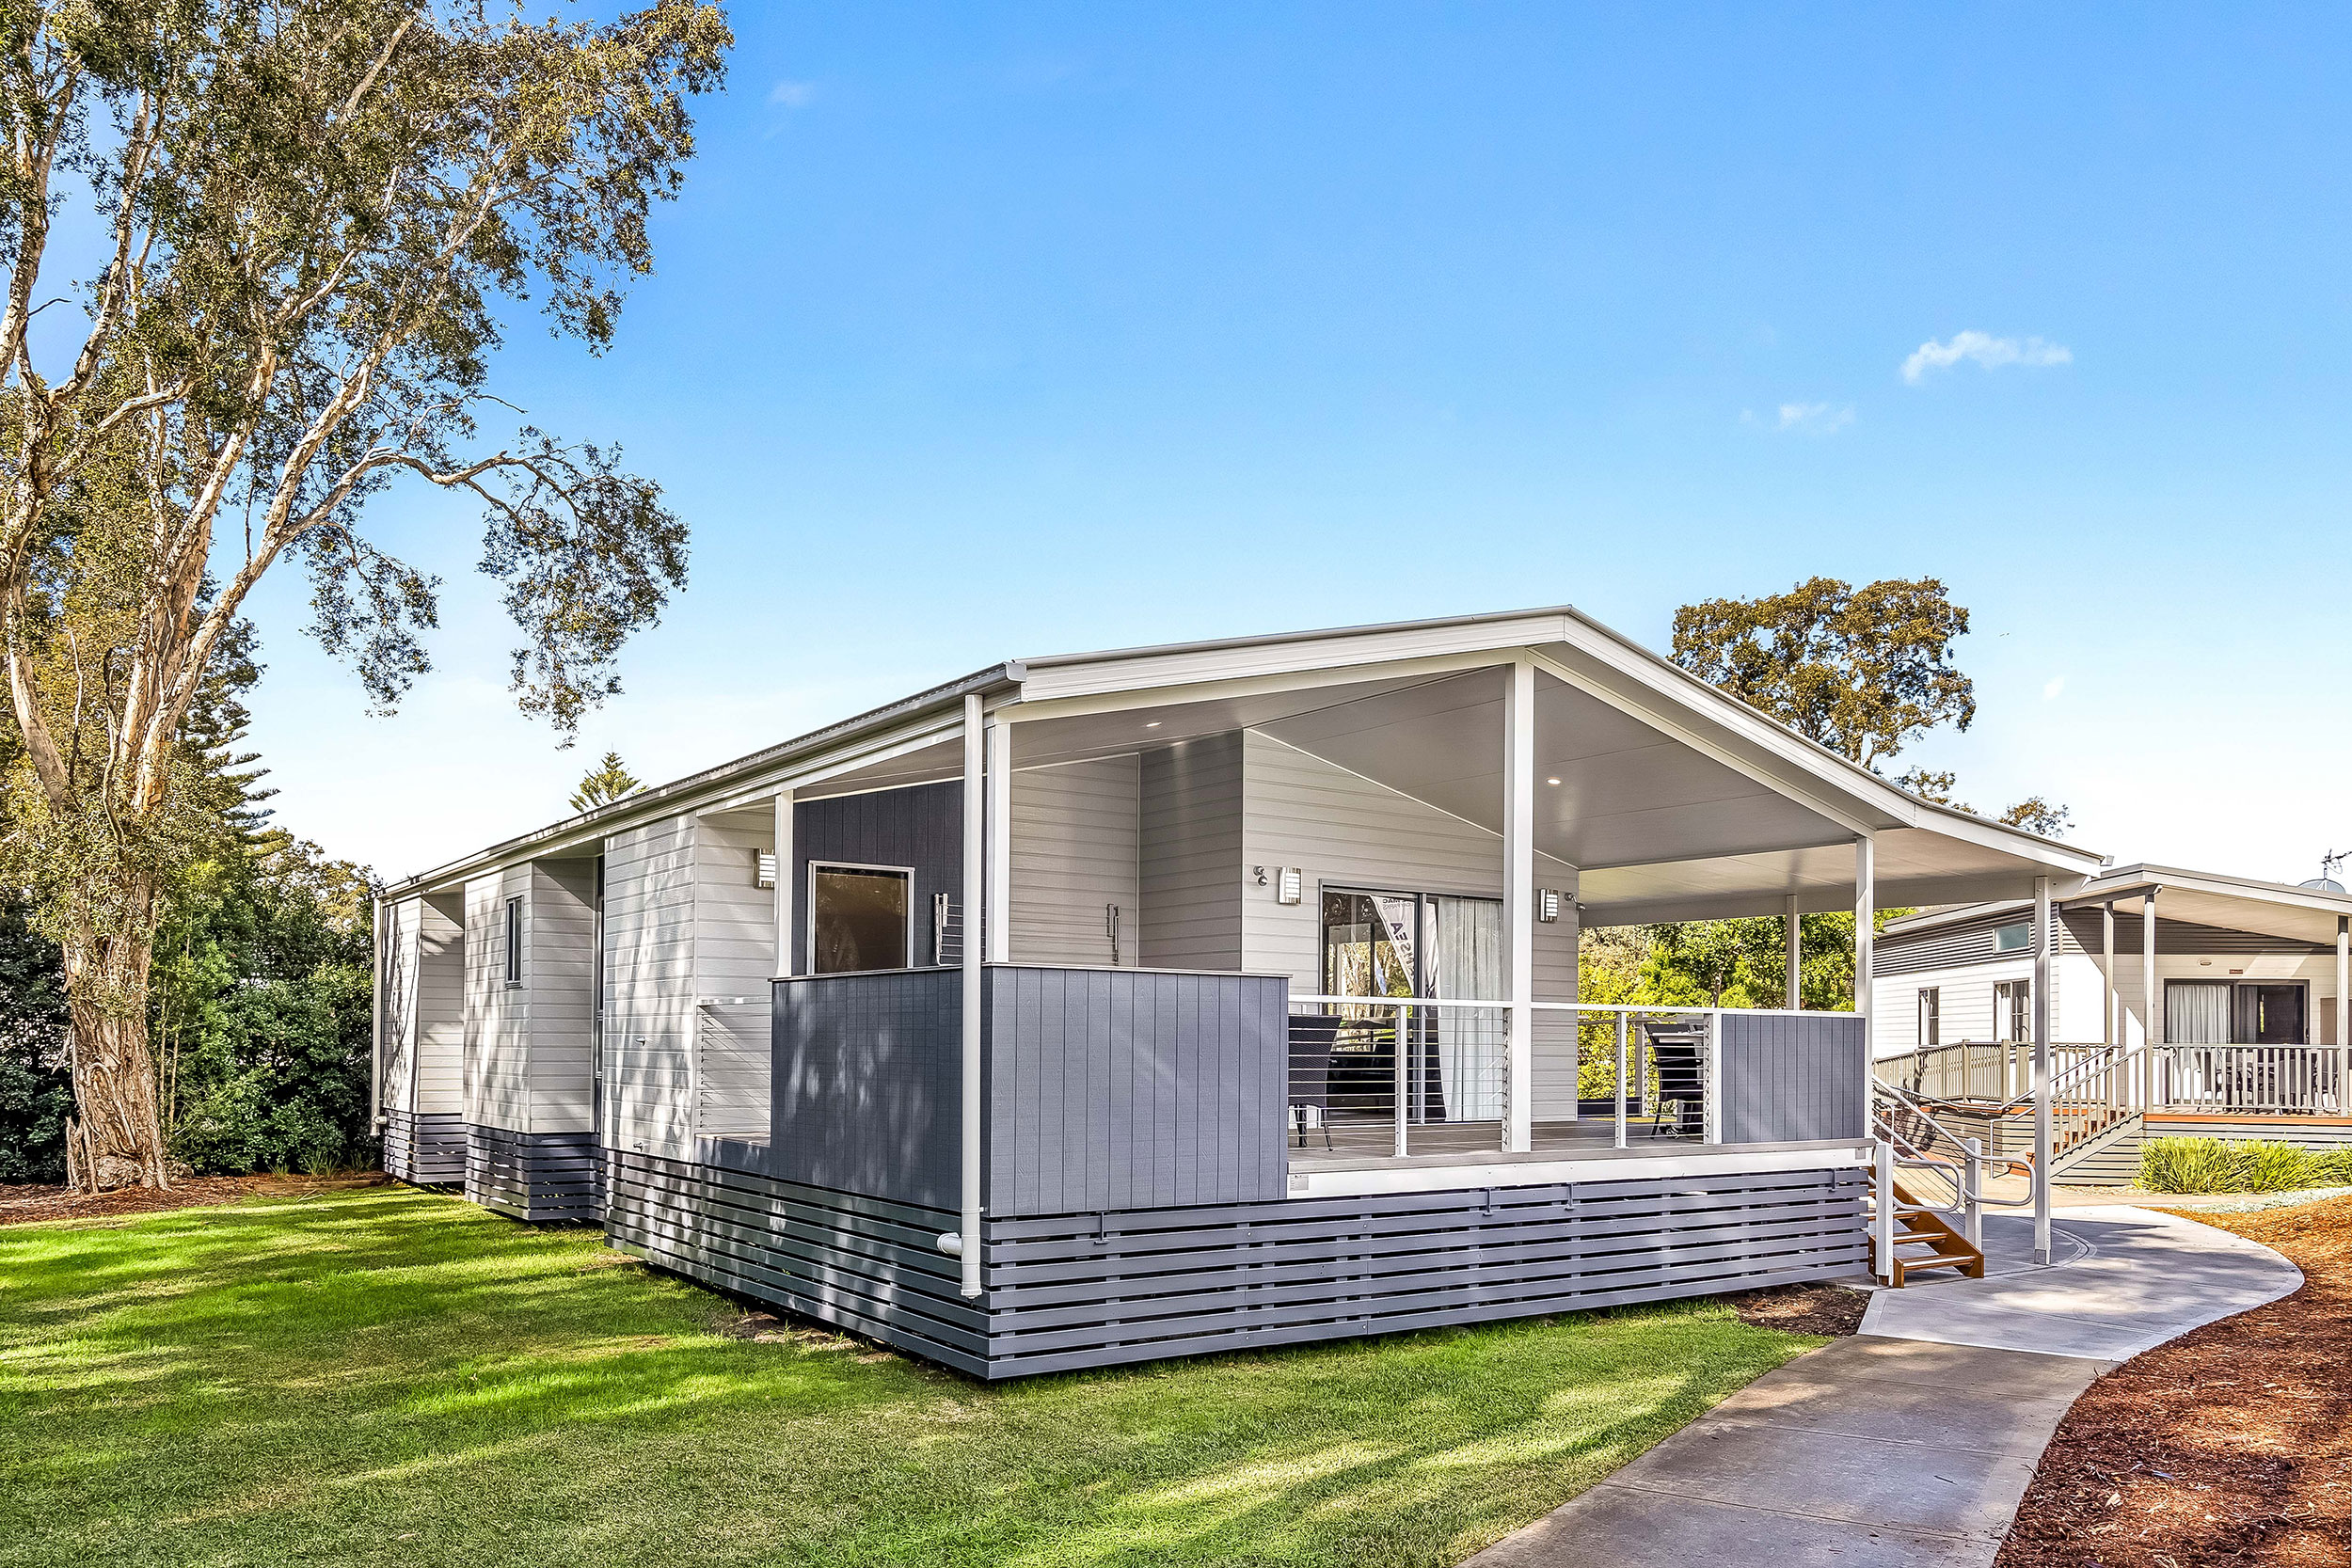 Name : Lake Mac Holiday Parks - Inclusive Cabins